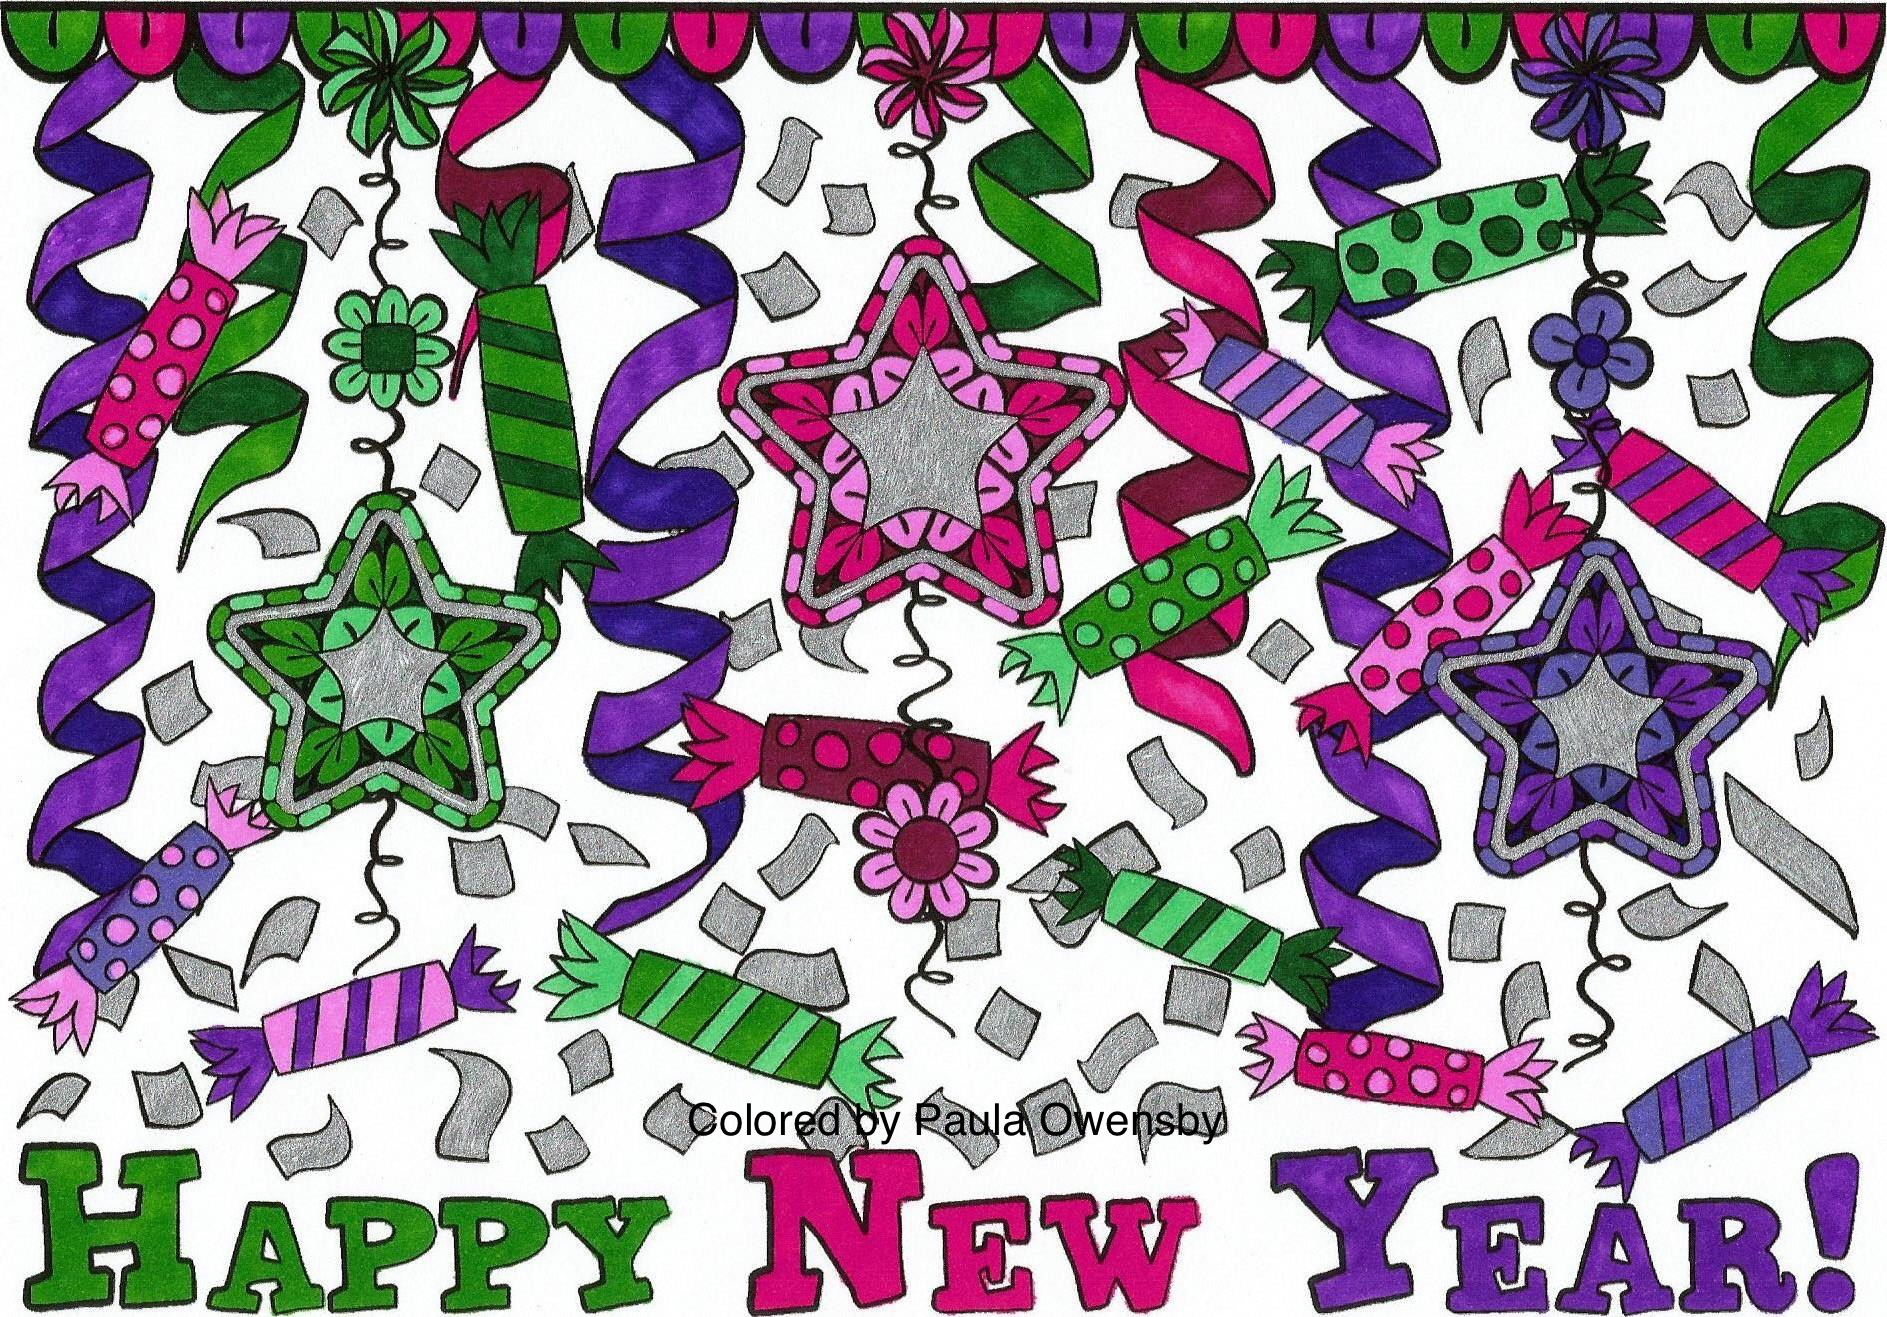 Happy New Year colored by Paula Owensby